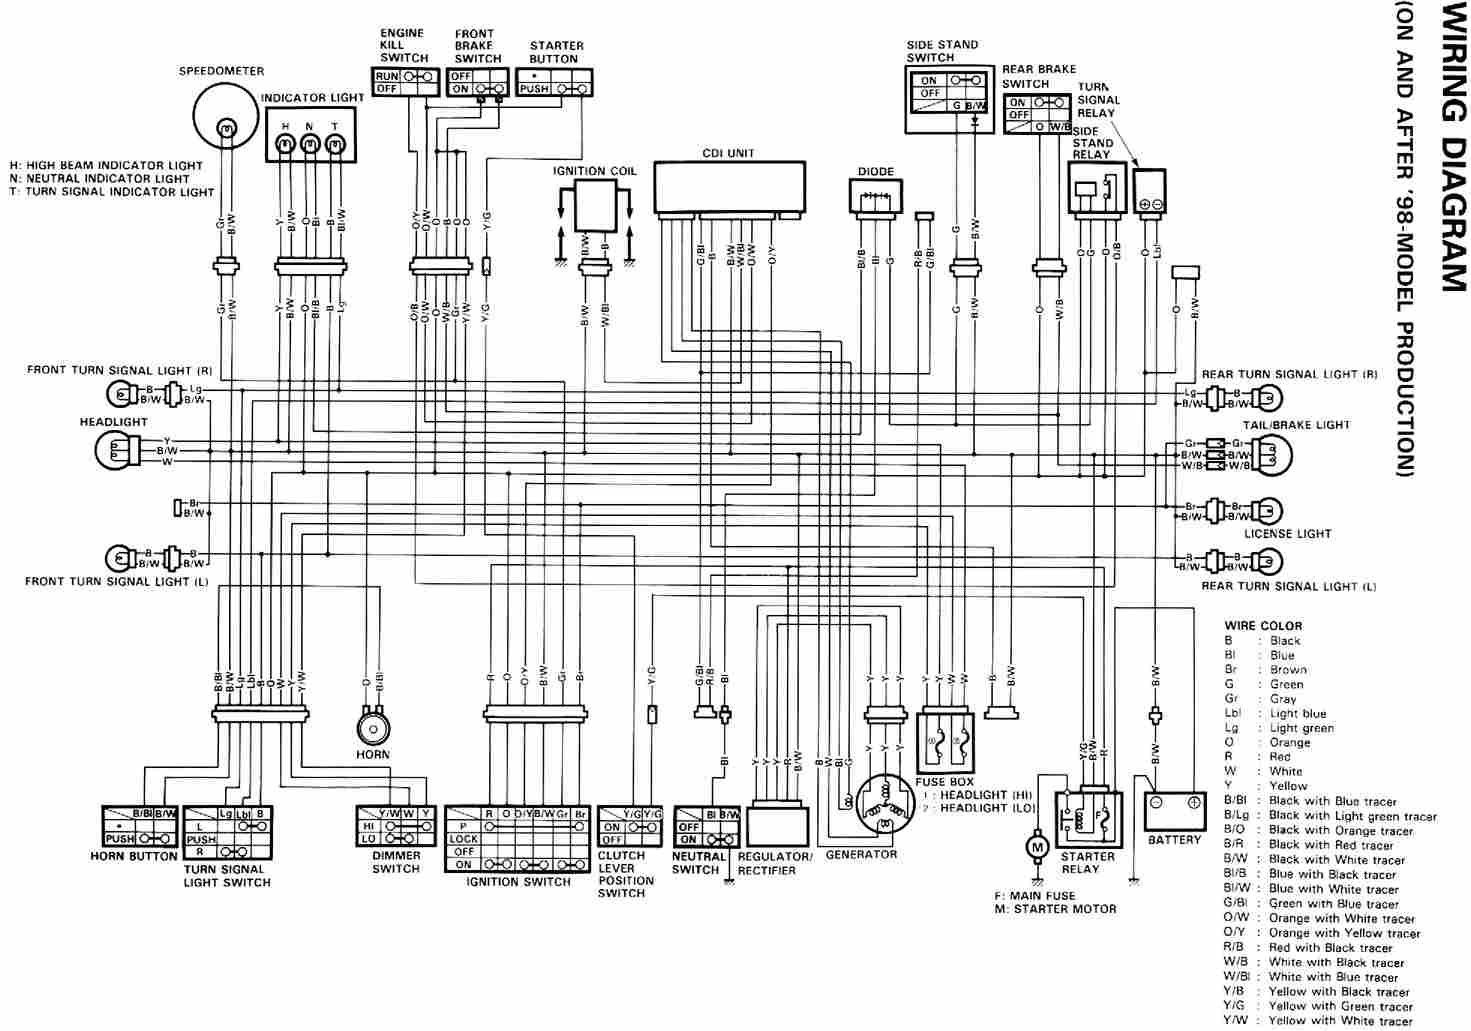 Suzuki Burgman Wiring Diagram further 1991 Suzuki Samurai Wiring Diagram additionally 187 Honda Wiring Diagram Section moreover Zaplon Yamaha 600 2kf T116 as well Suzuki Samurai Carburetor Diagram. on suzuki dr 200 wiring diagram